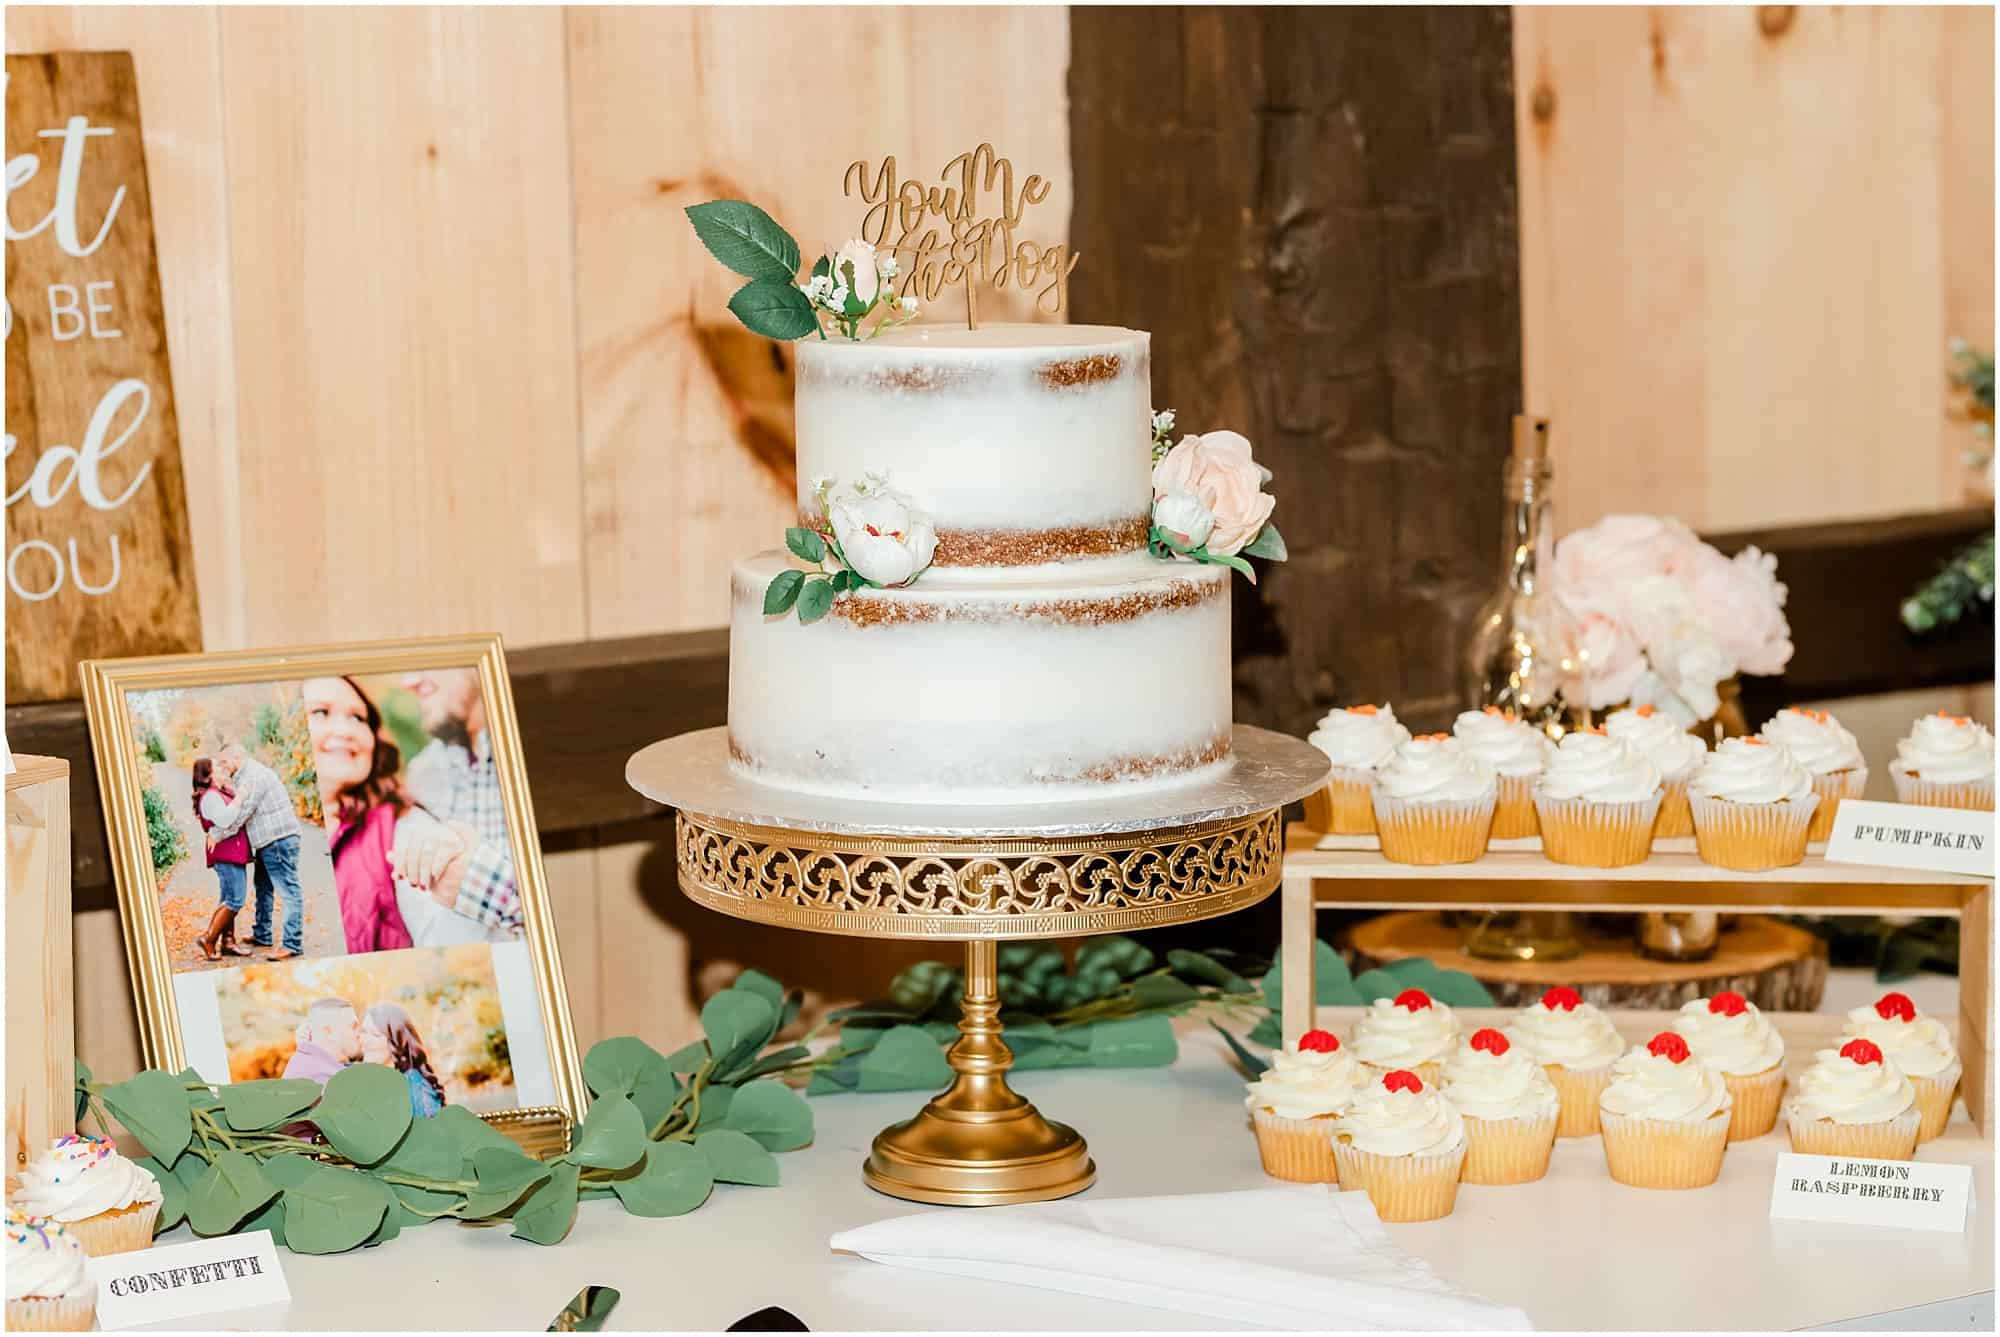 cake and cupcakes at barn wedding